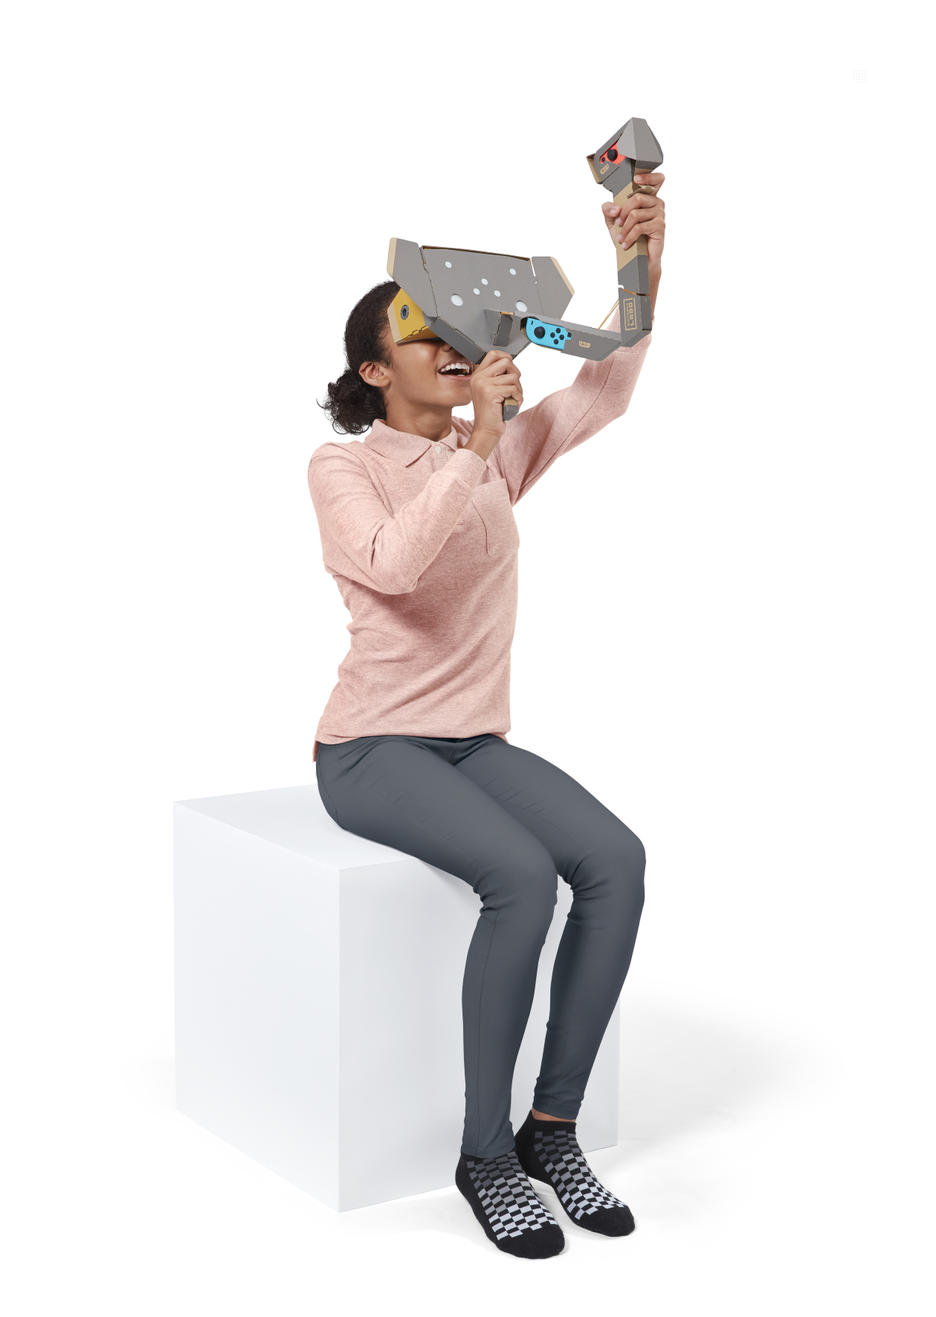 Nintendo Labo: VR Expansion Set 1